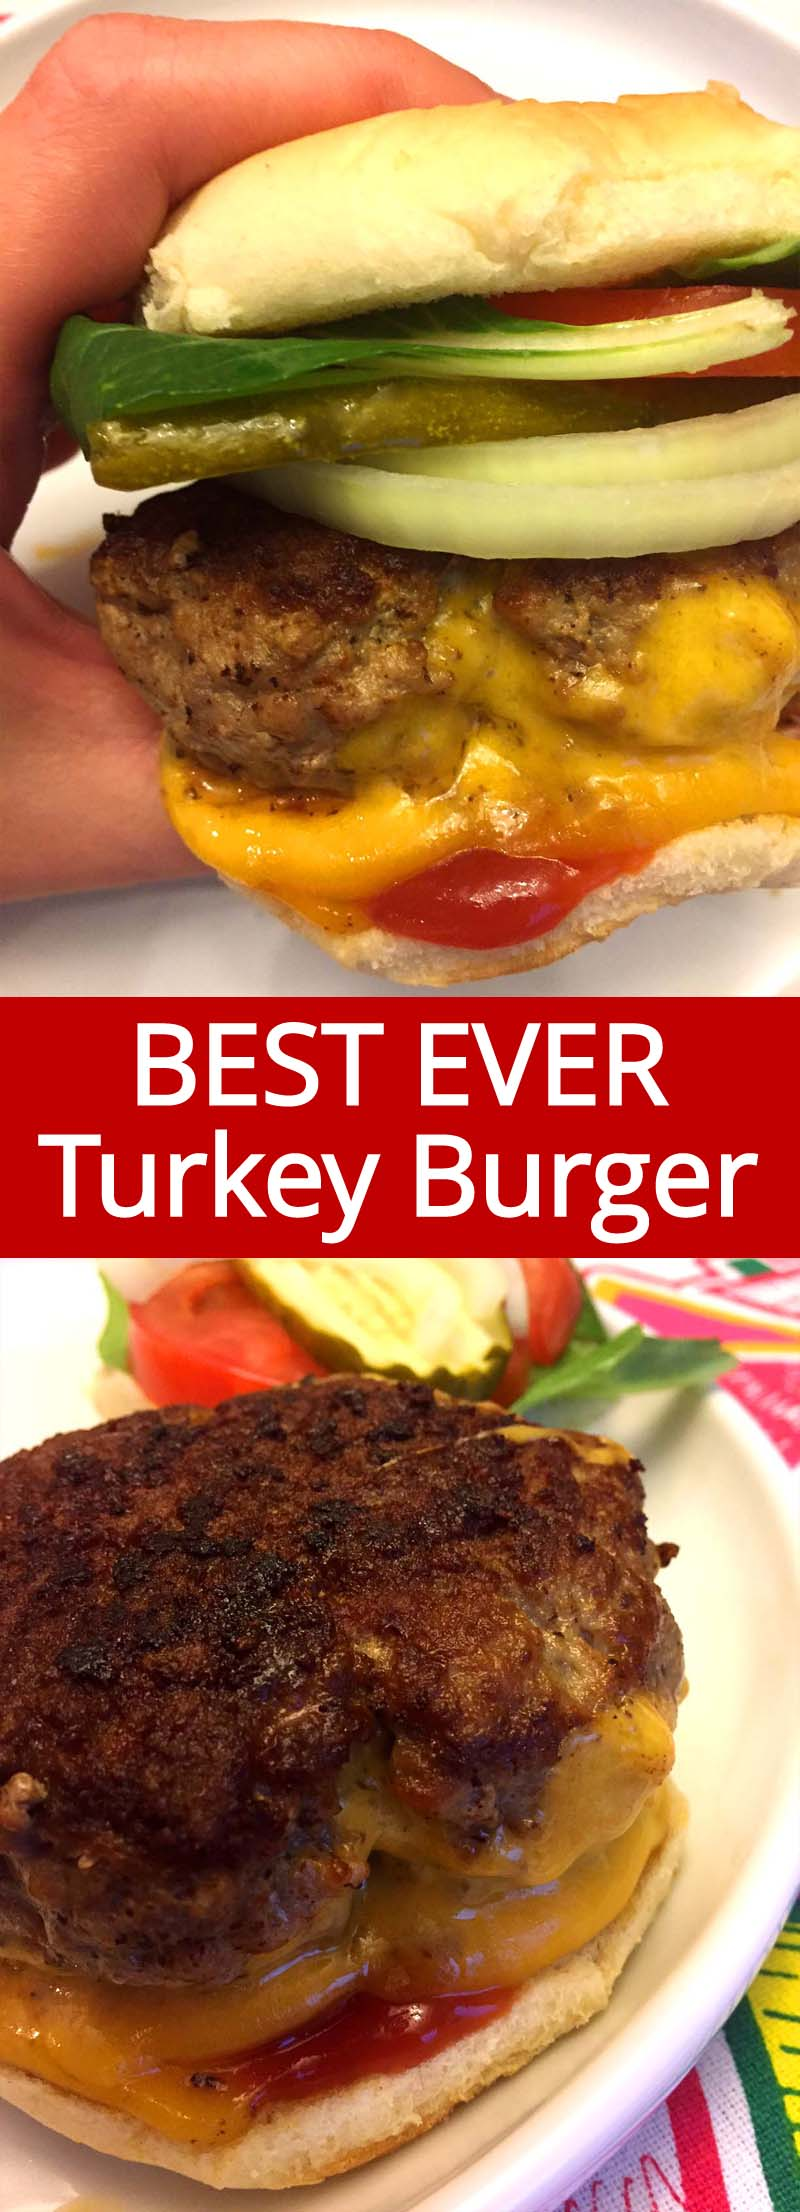 I love these turkey burgers! They are so moist and juicy!  This is the best healthy turkey burger recipe ever!